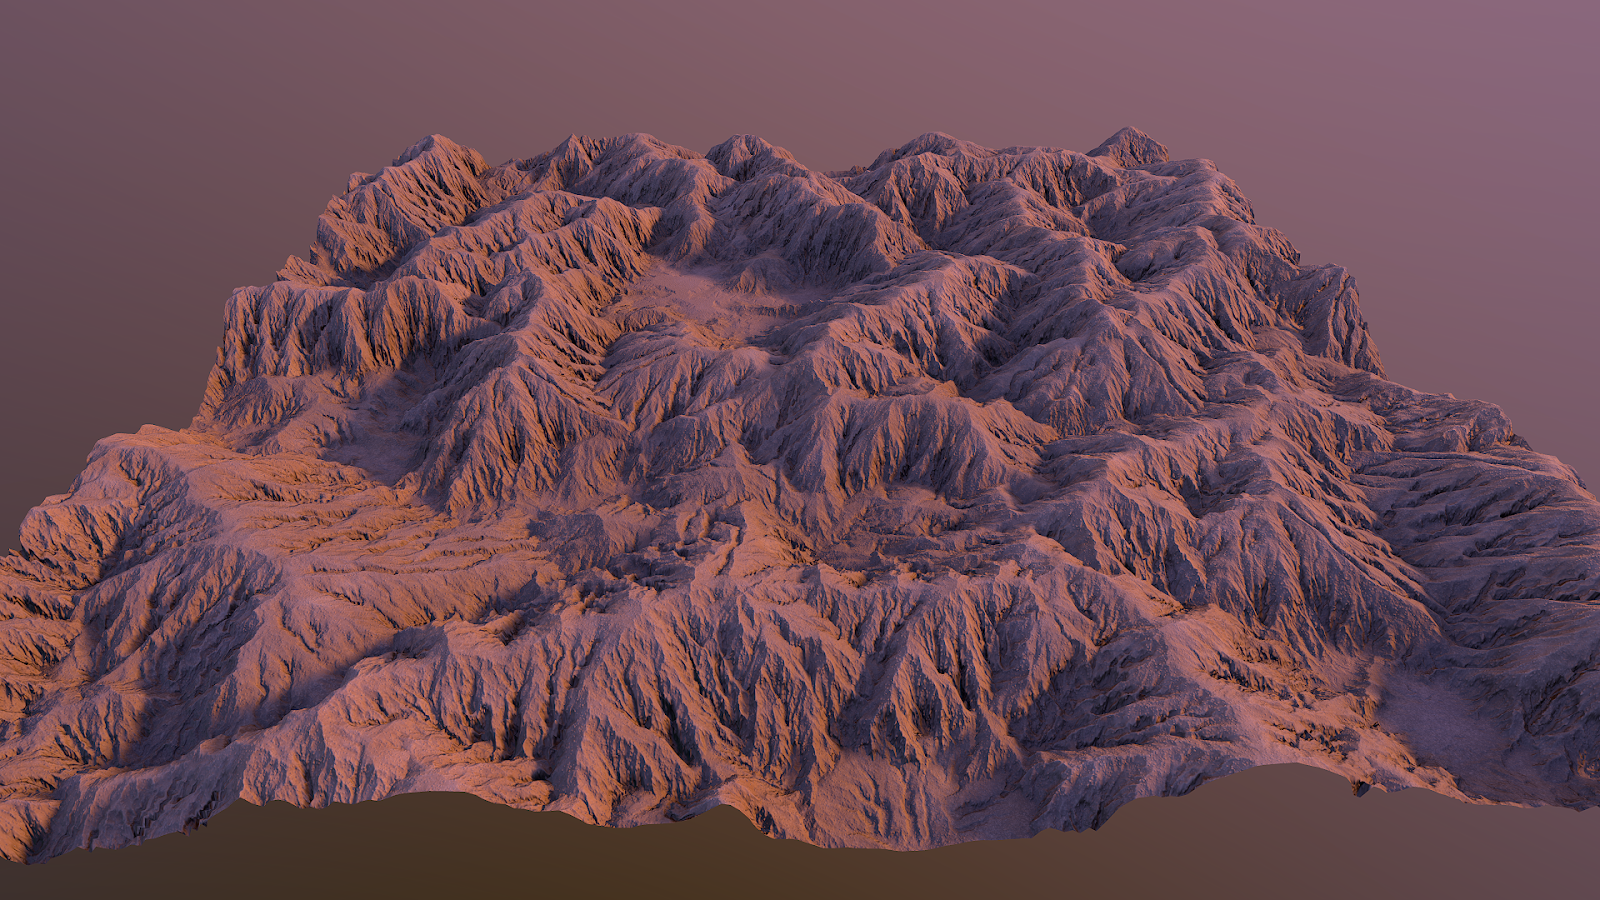 Desert mountains material PBR tessellation unreal4 unity sunset light setup Igor Novik 3d artist